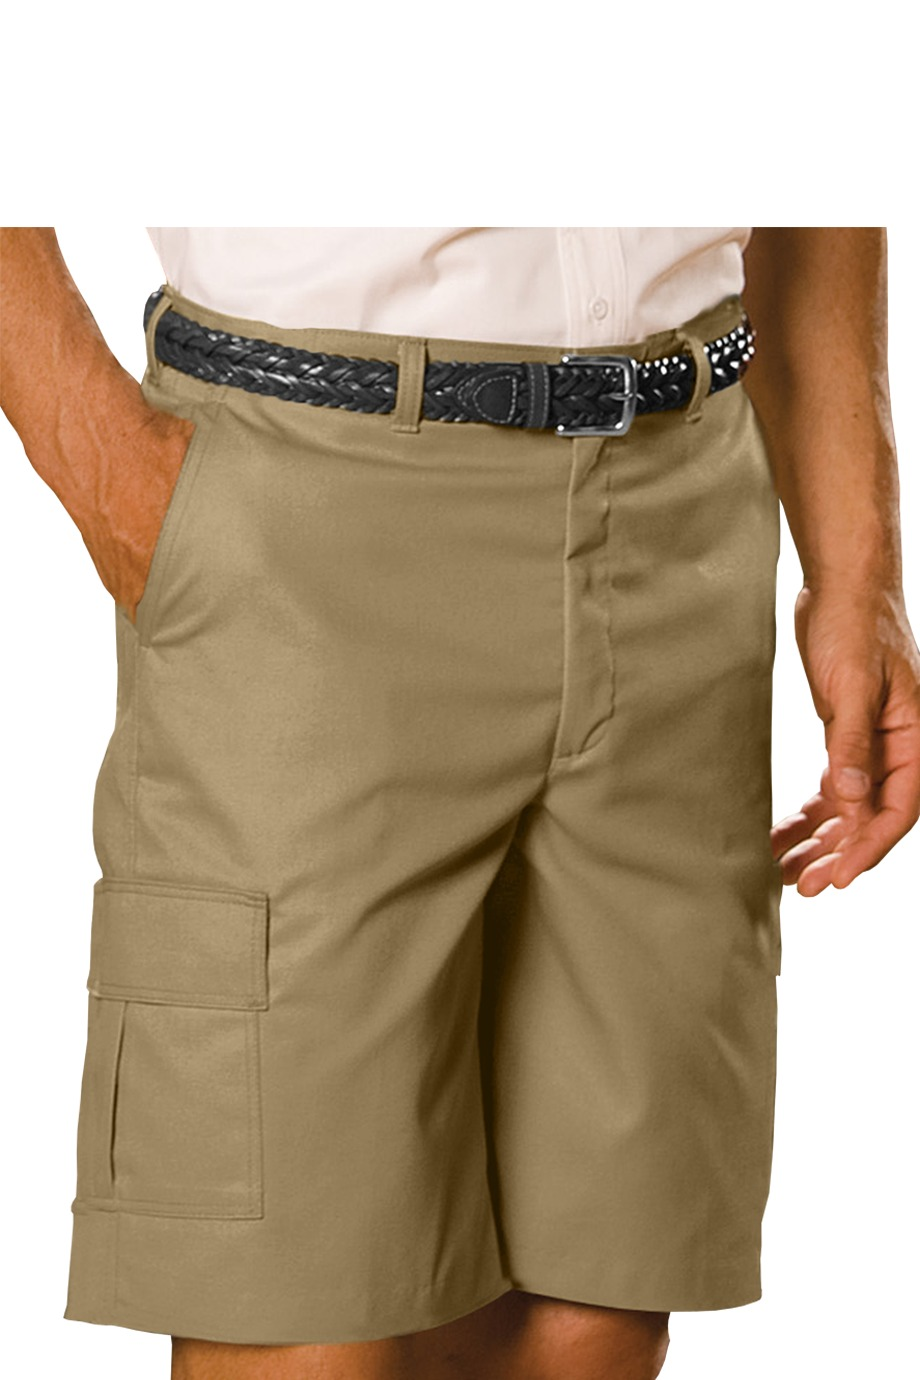 Edwards Garment 2468 - Men's Utility Cargo Short